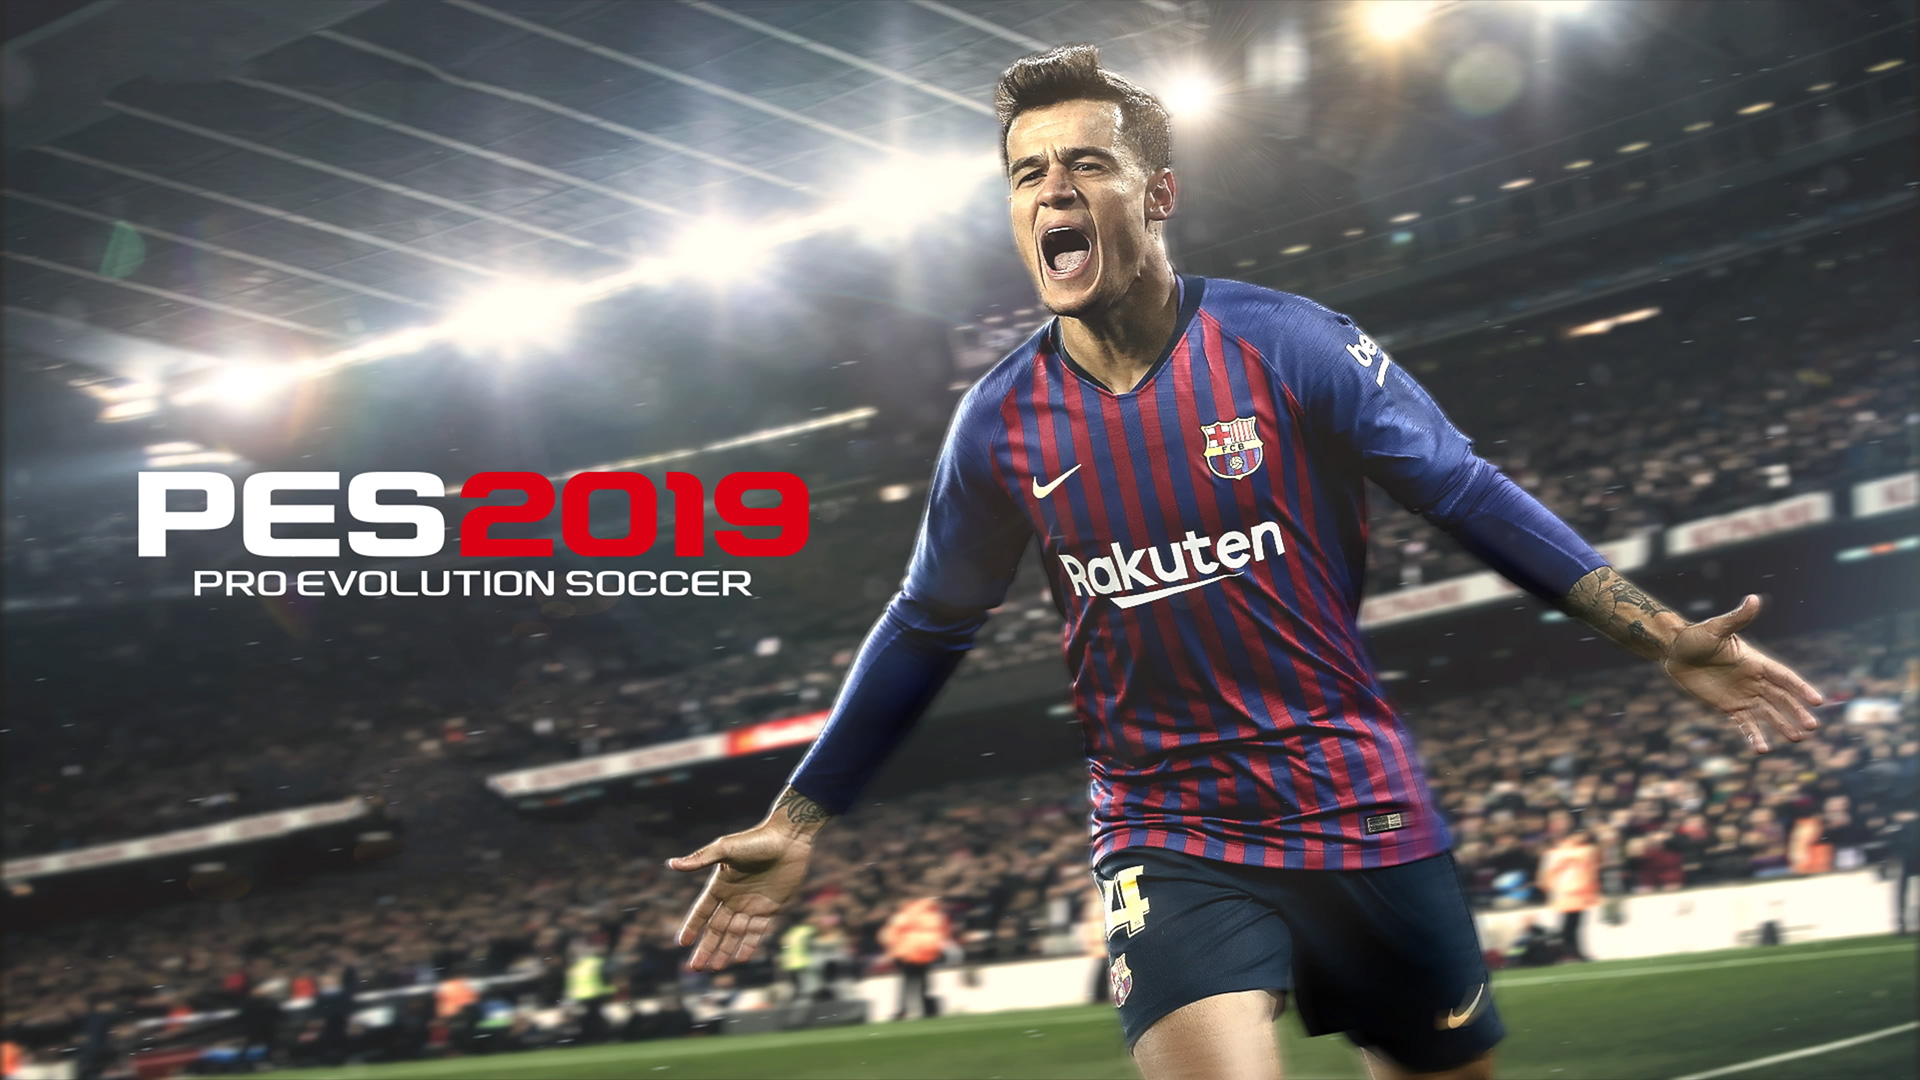 Pro Evolution Soccer 2019 Wallpapers in Ultra HD | 4K ...